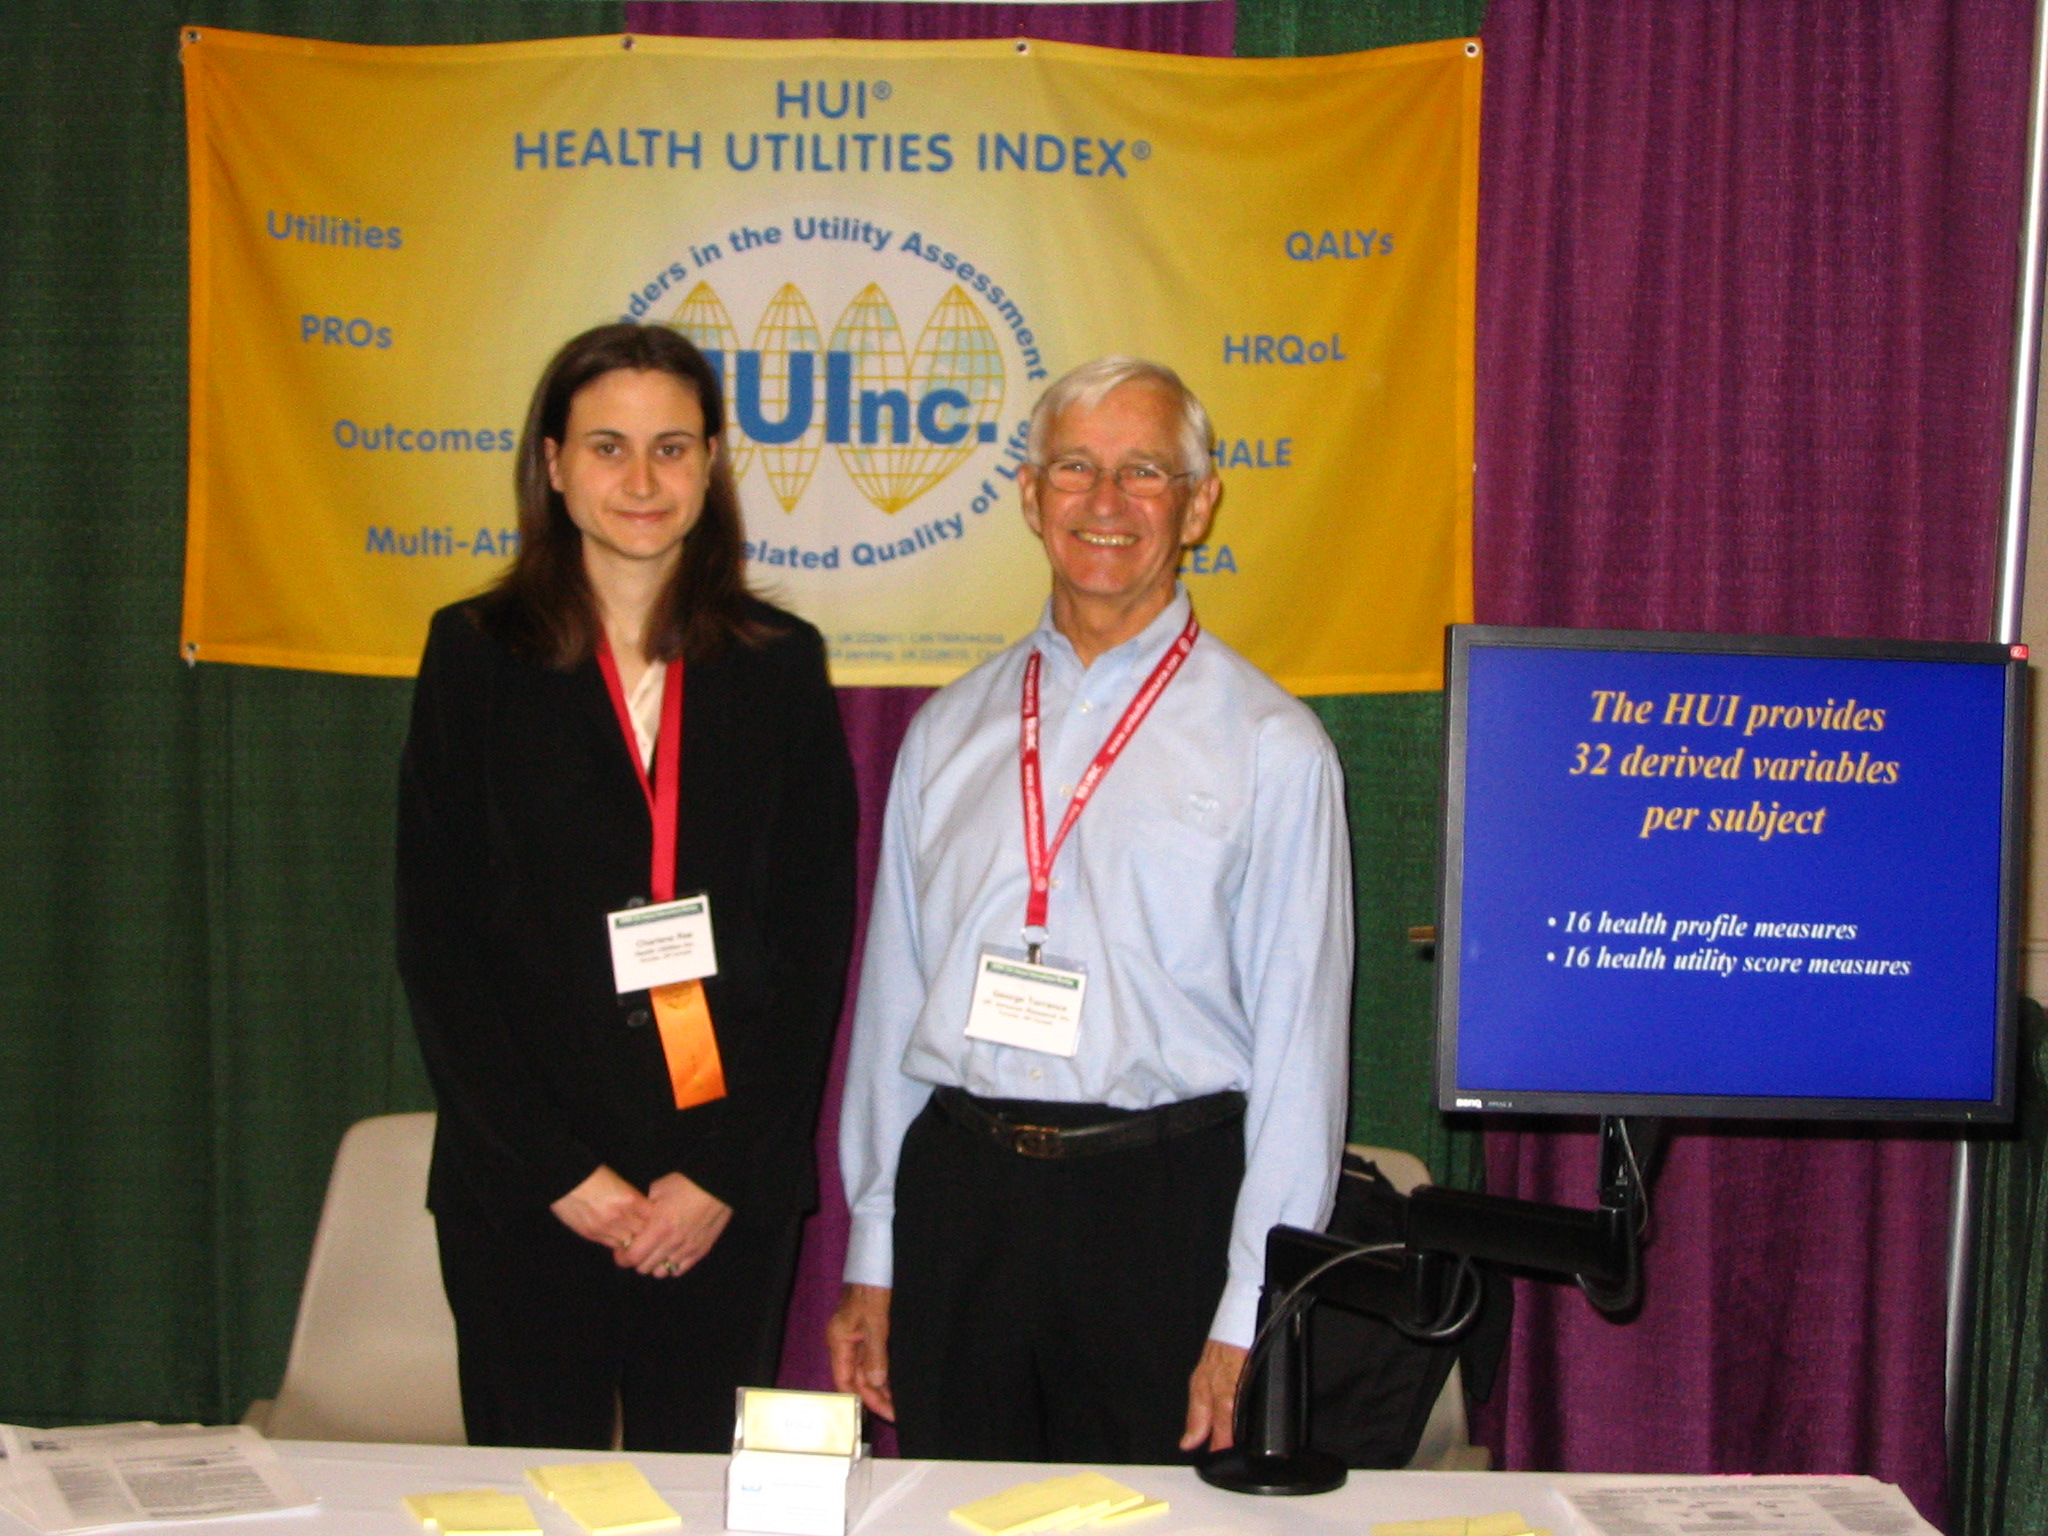 ISPOR Booth, May 2006